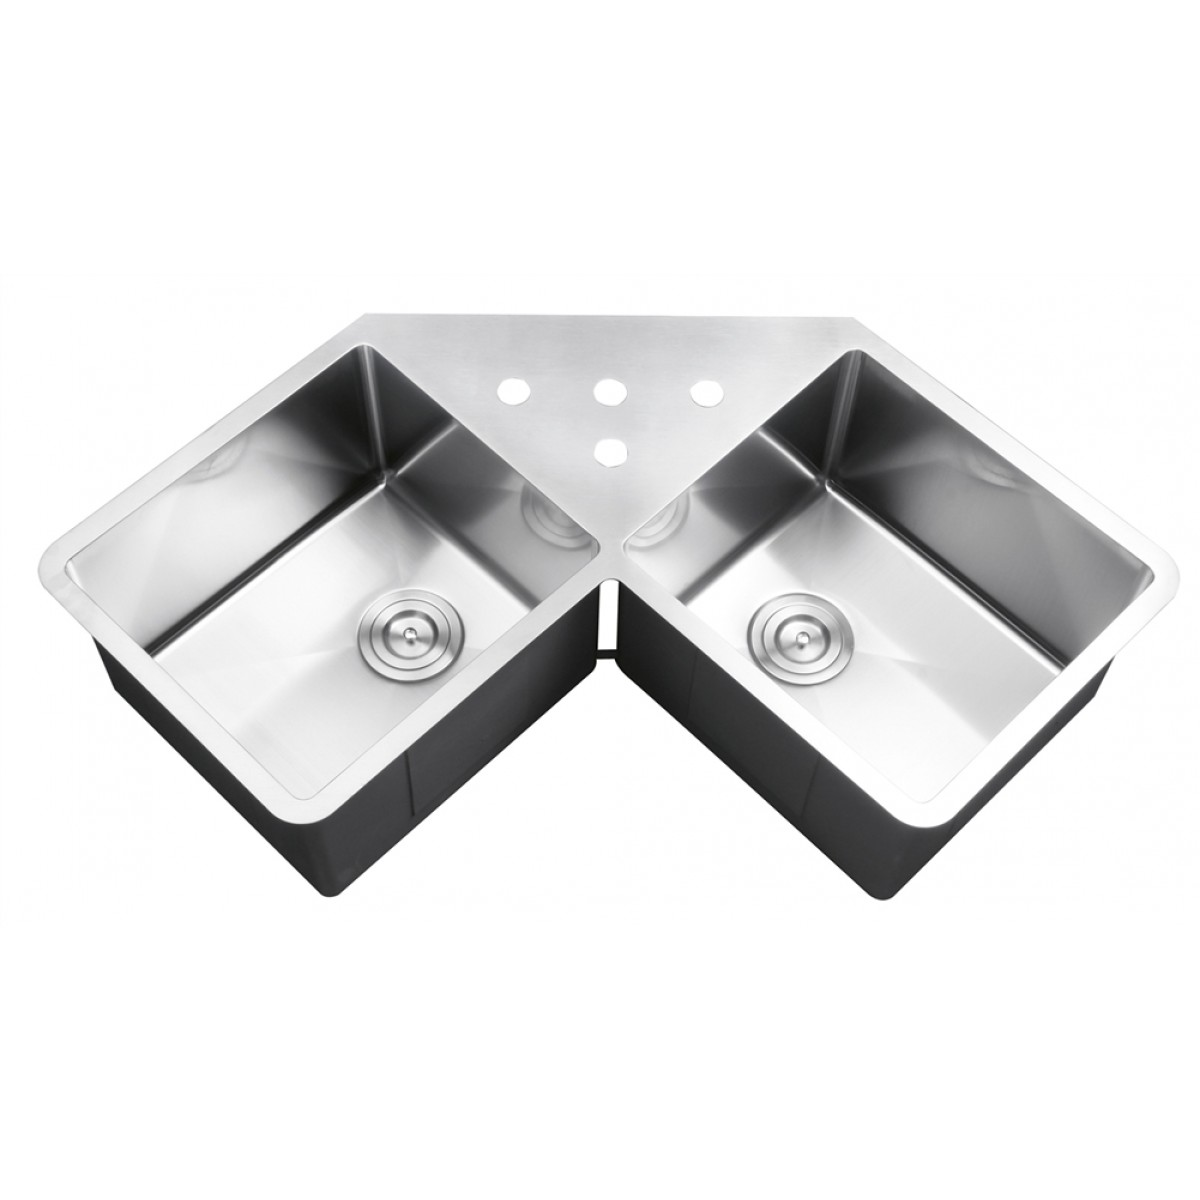 43 inch stainless steel undermount butterly corner double bowl kitchen sink with free accessories 43 inch stainless steel undermount butterly corner double bowl      rh   emoderndecor com